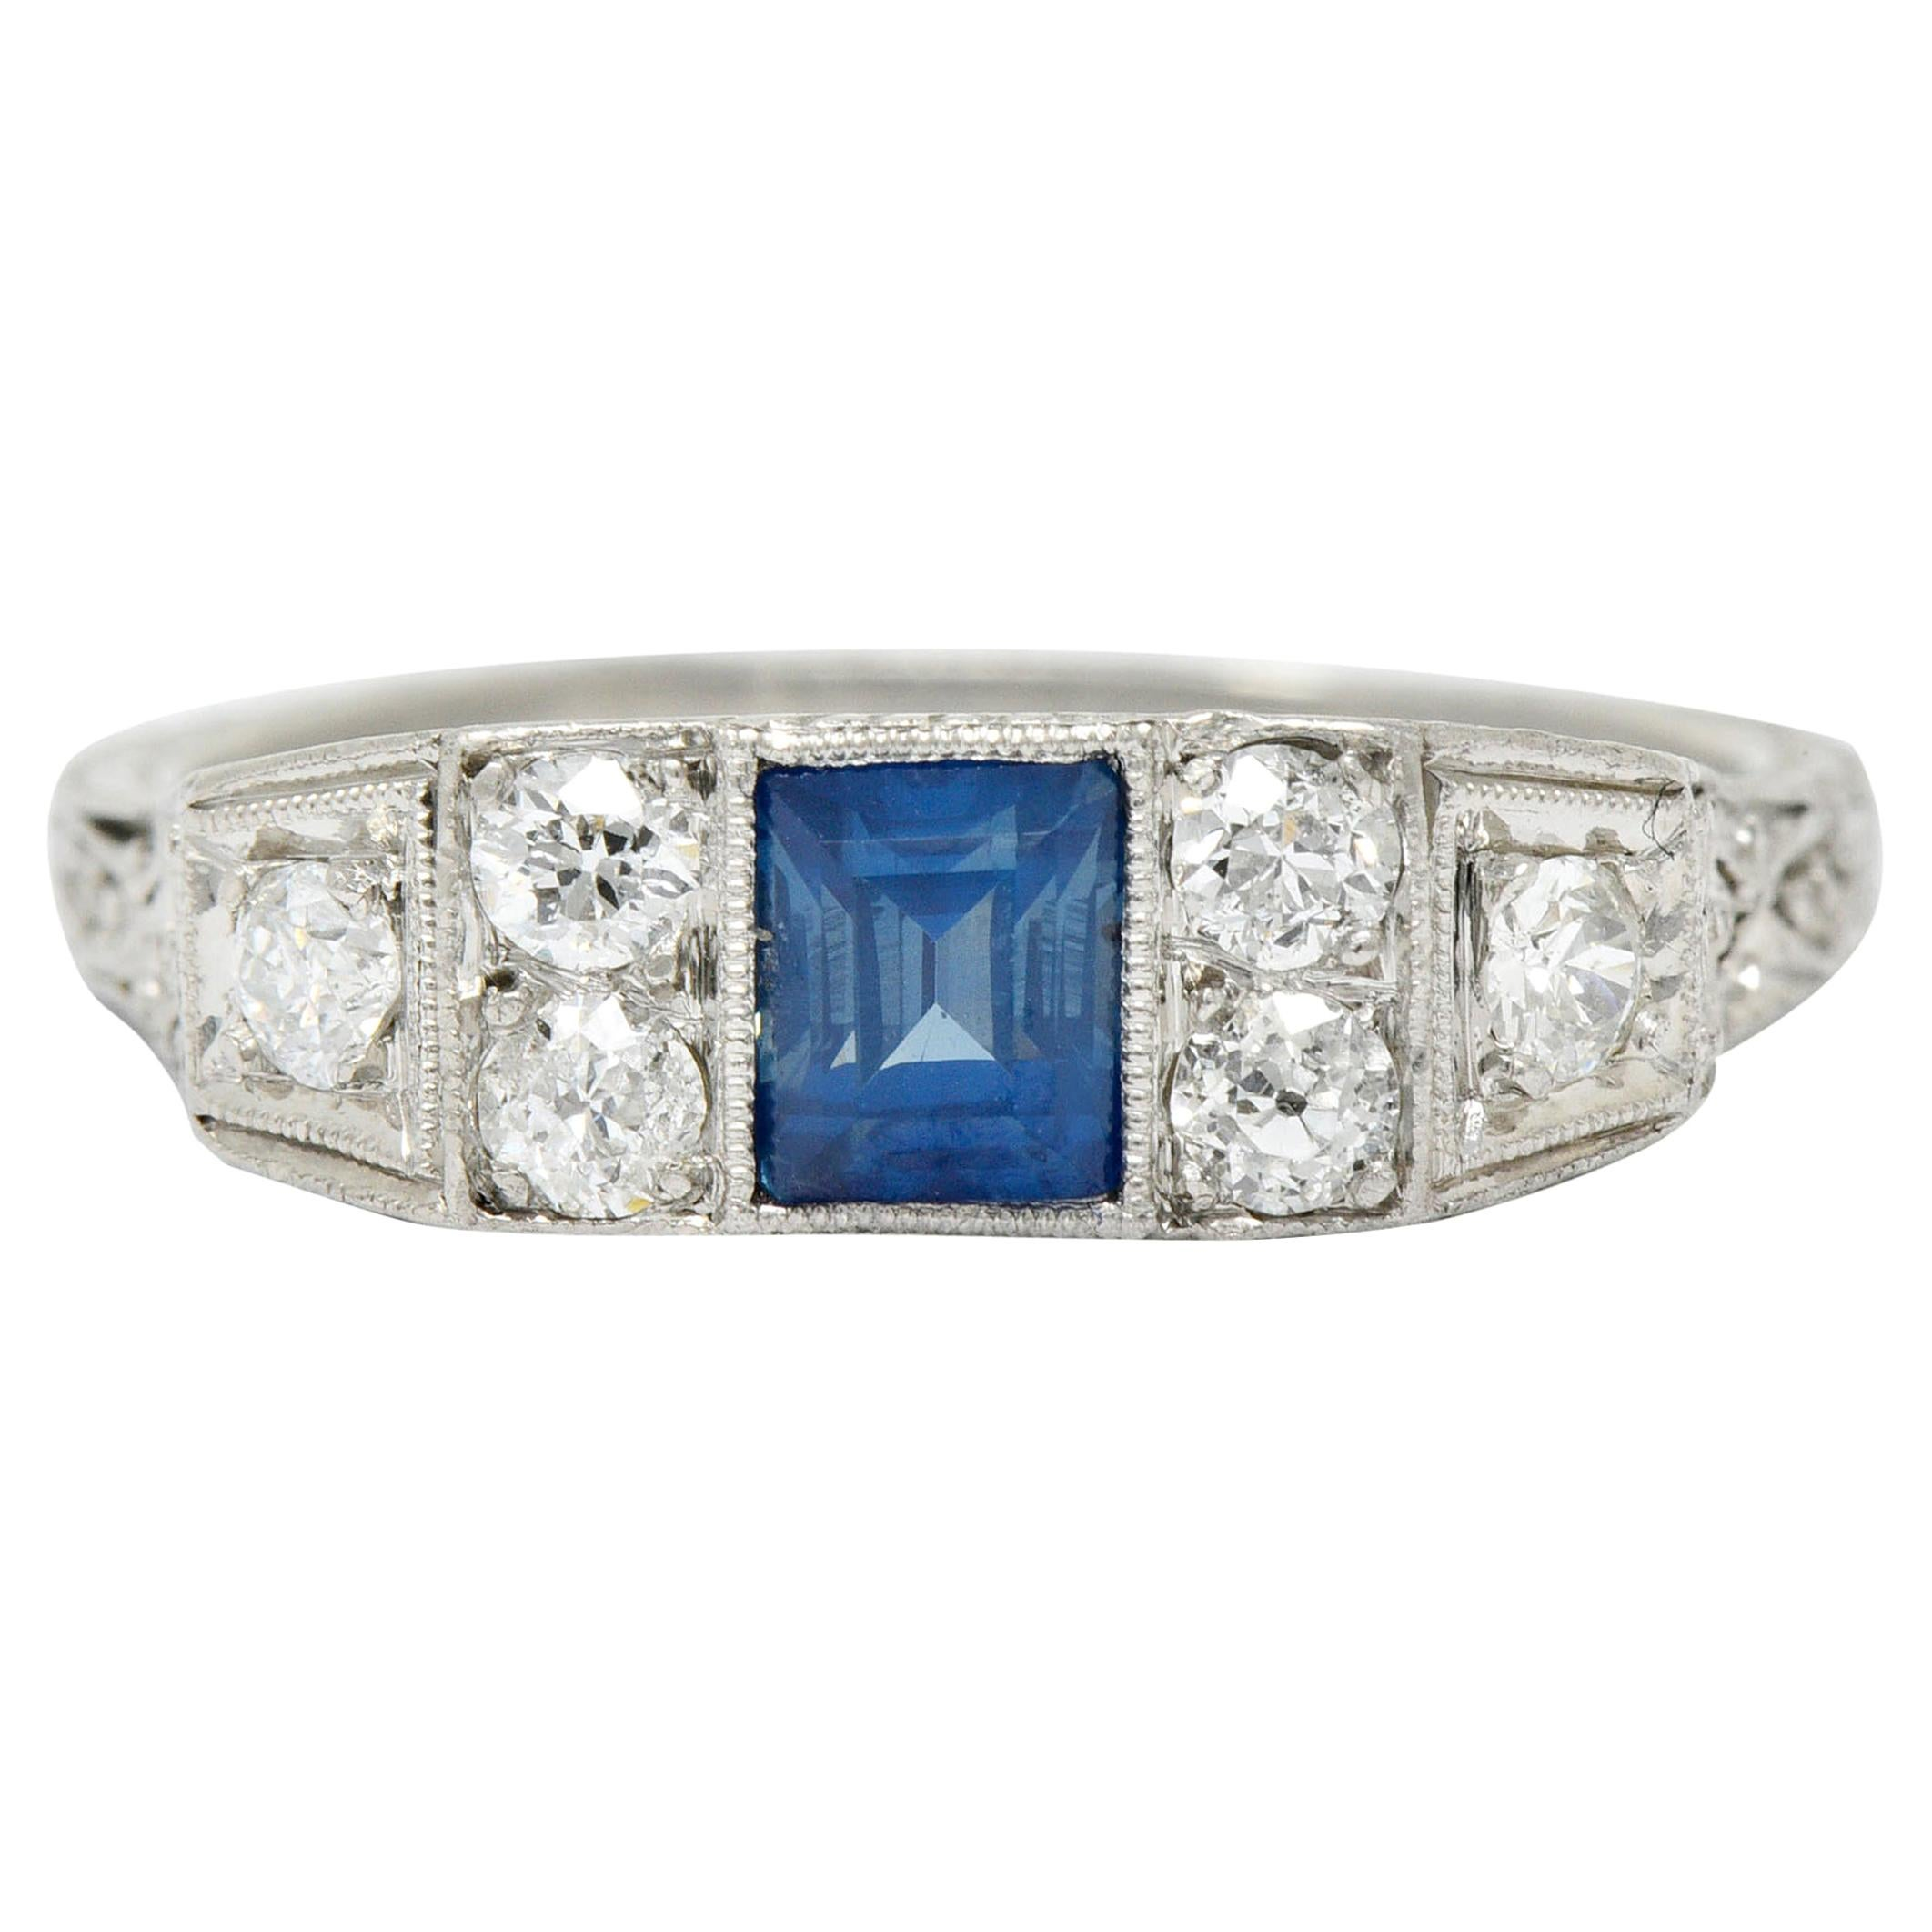 Art Deco Sapphire Diamond Platinum Filigree Band Ring